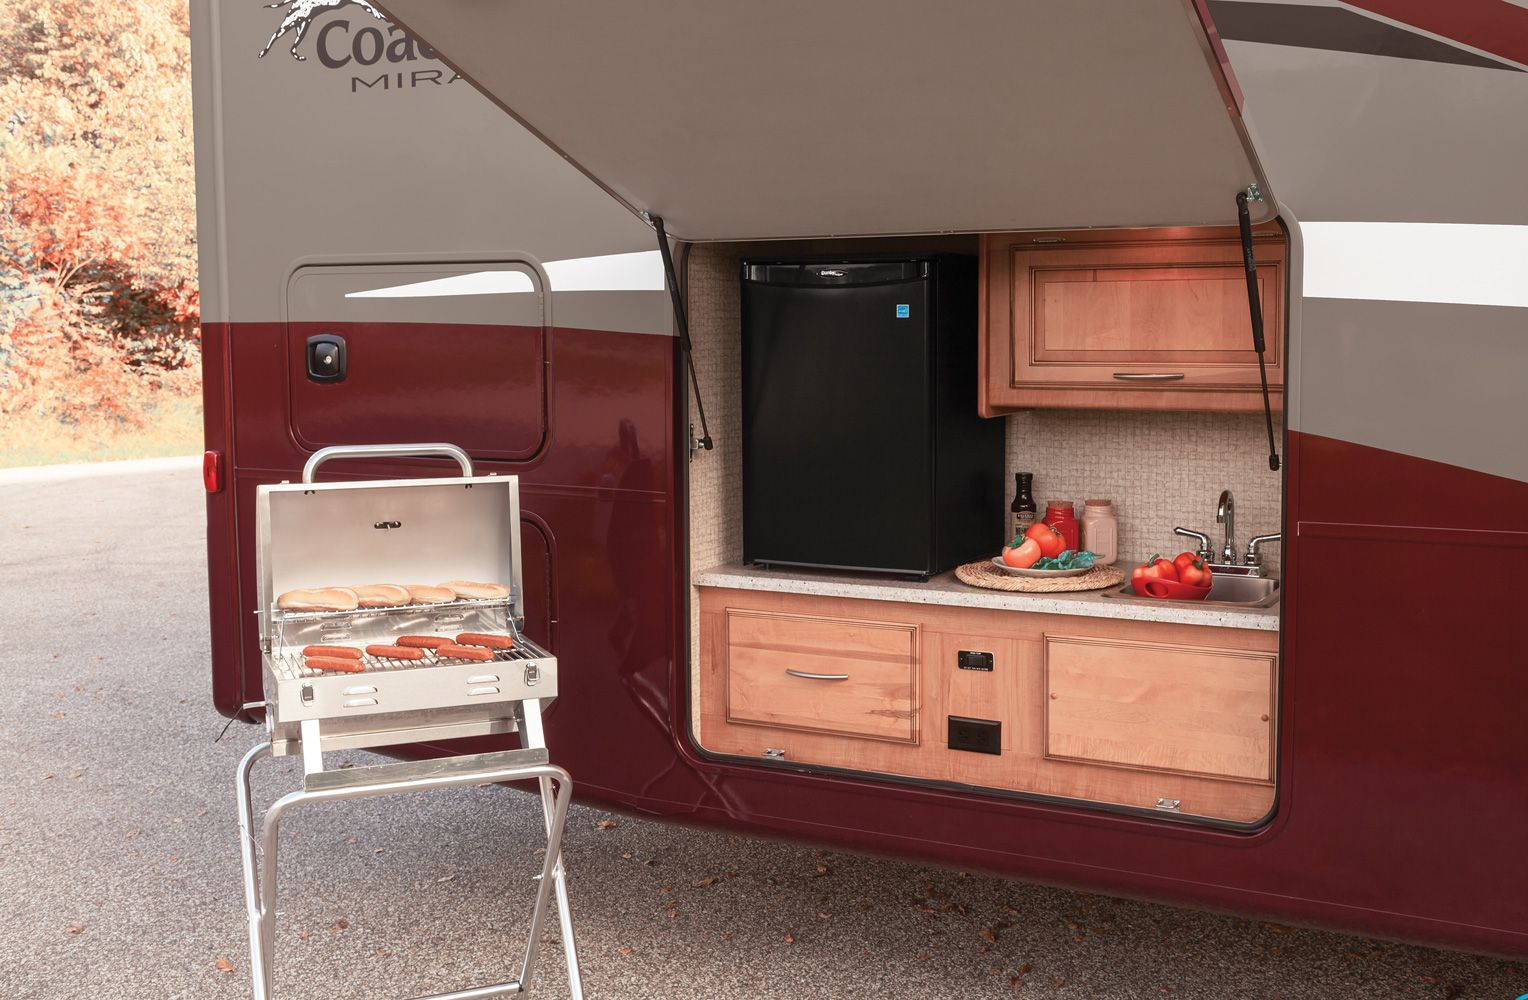 Coachmen Mirada Rv Optional Outdoor Kitchen And Entertainment Center Featuring A Grill With Qu Outdoor Camping Kitchen Simple Outdoor Kitchen Outdoor Kitchen